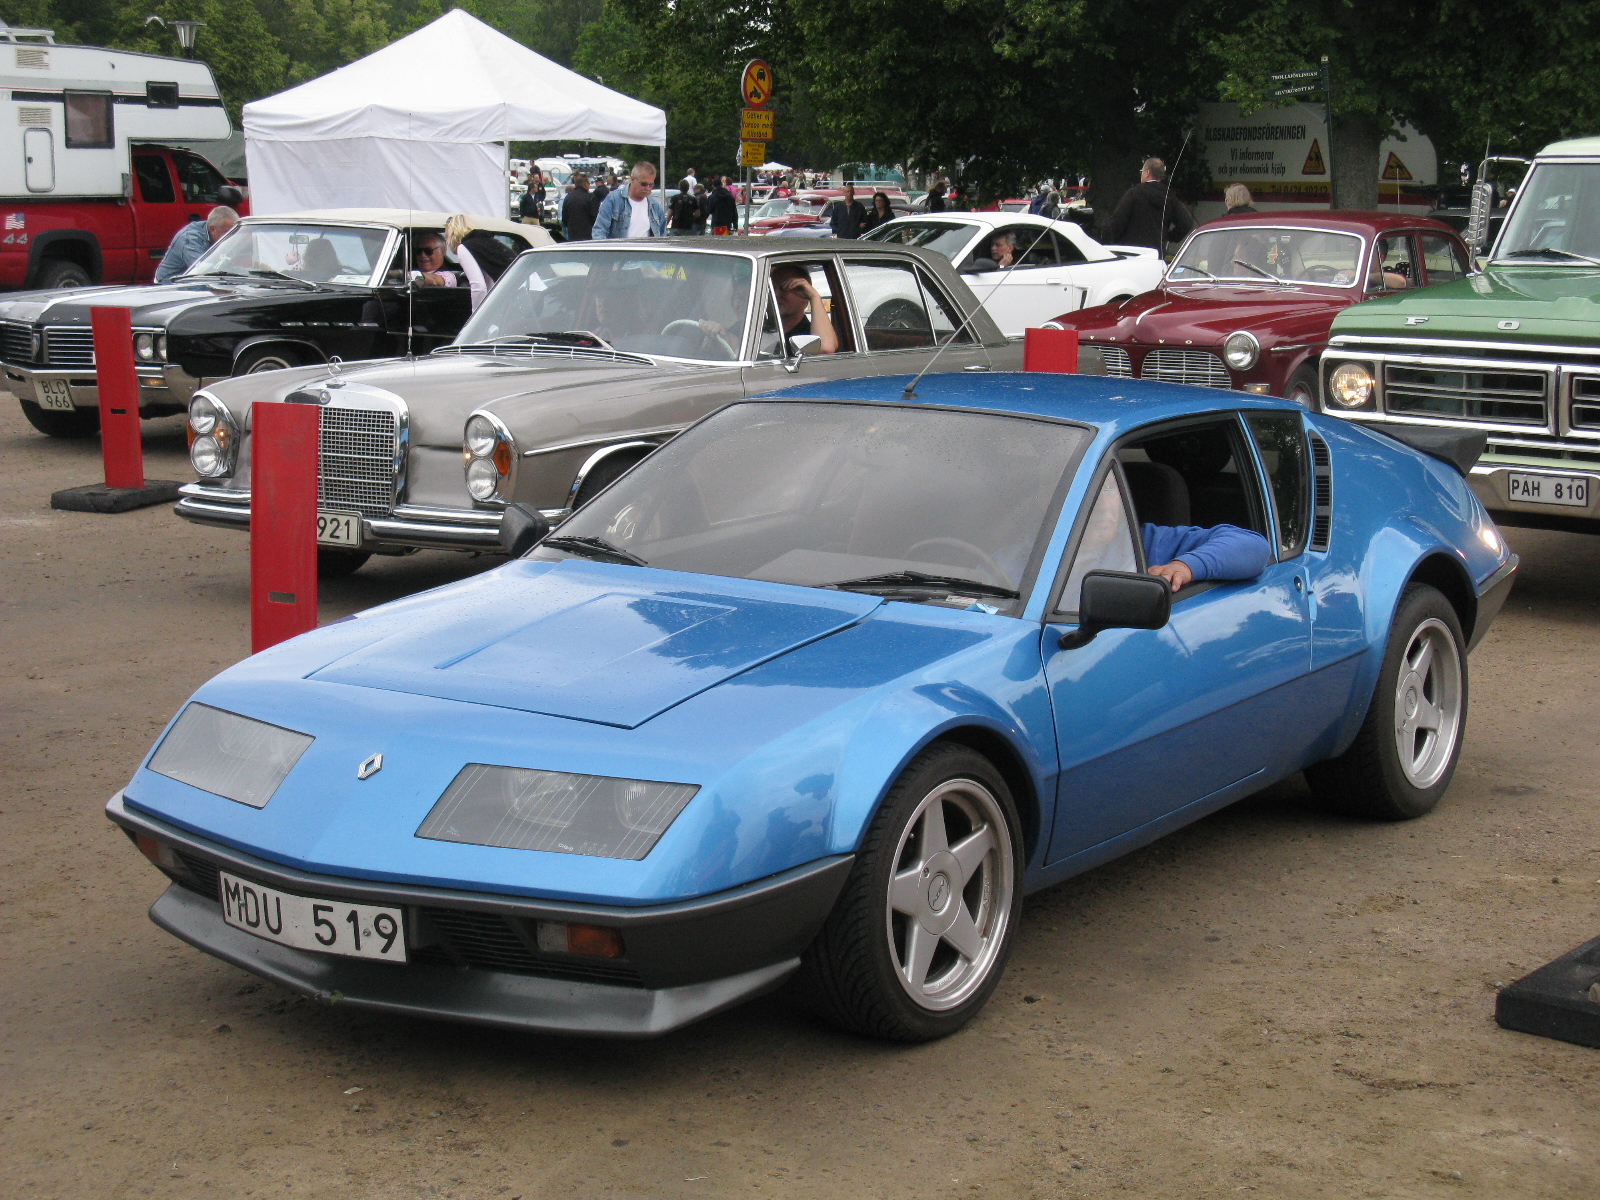 file renault alpine a310 v6 9251346658 jpg wikimedia commons. Black Bedroom Furniture Sets. Home Design Ideas